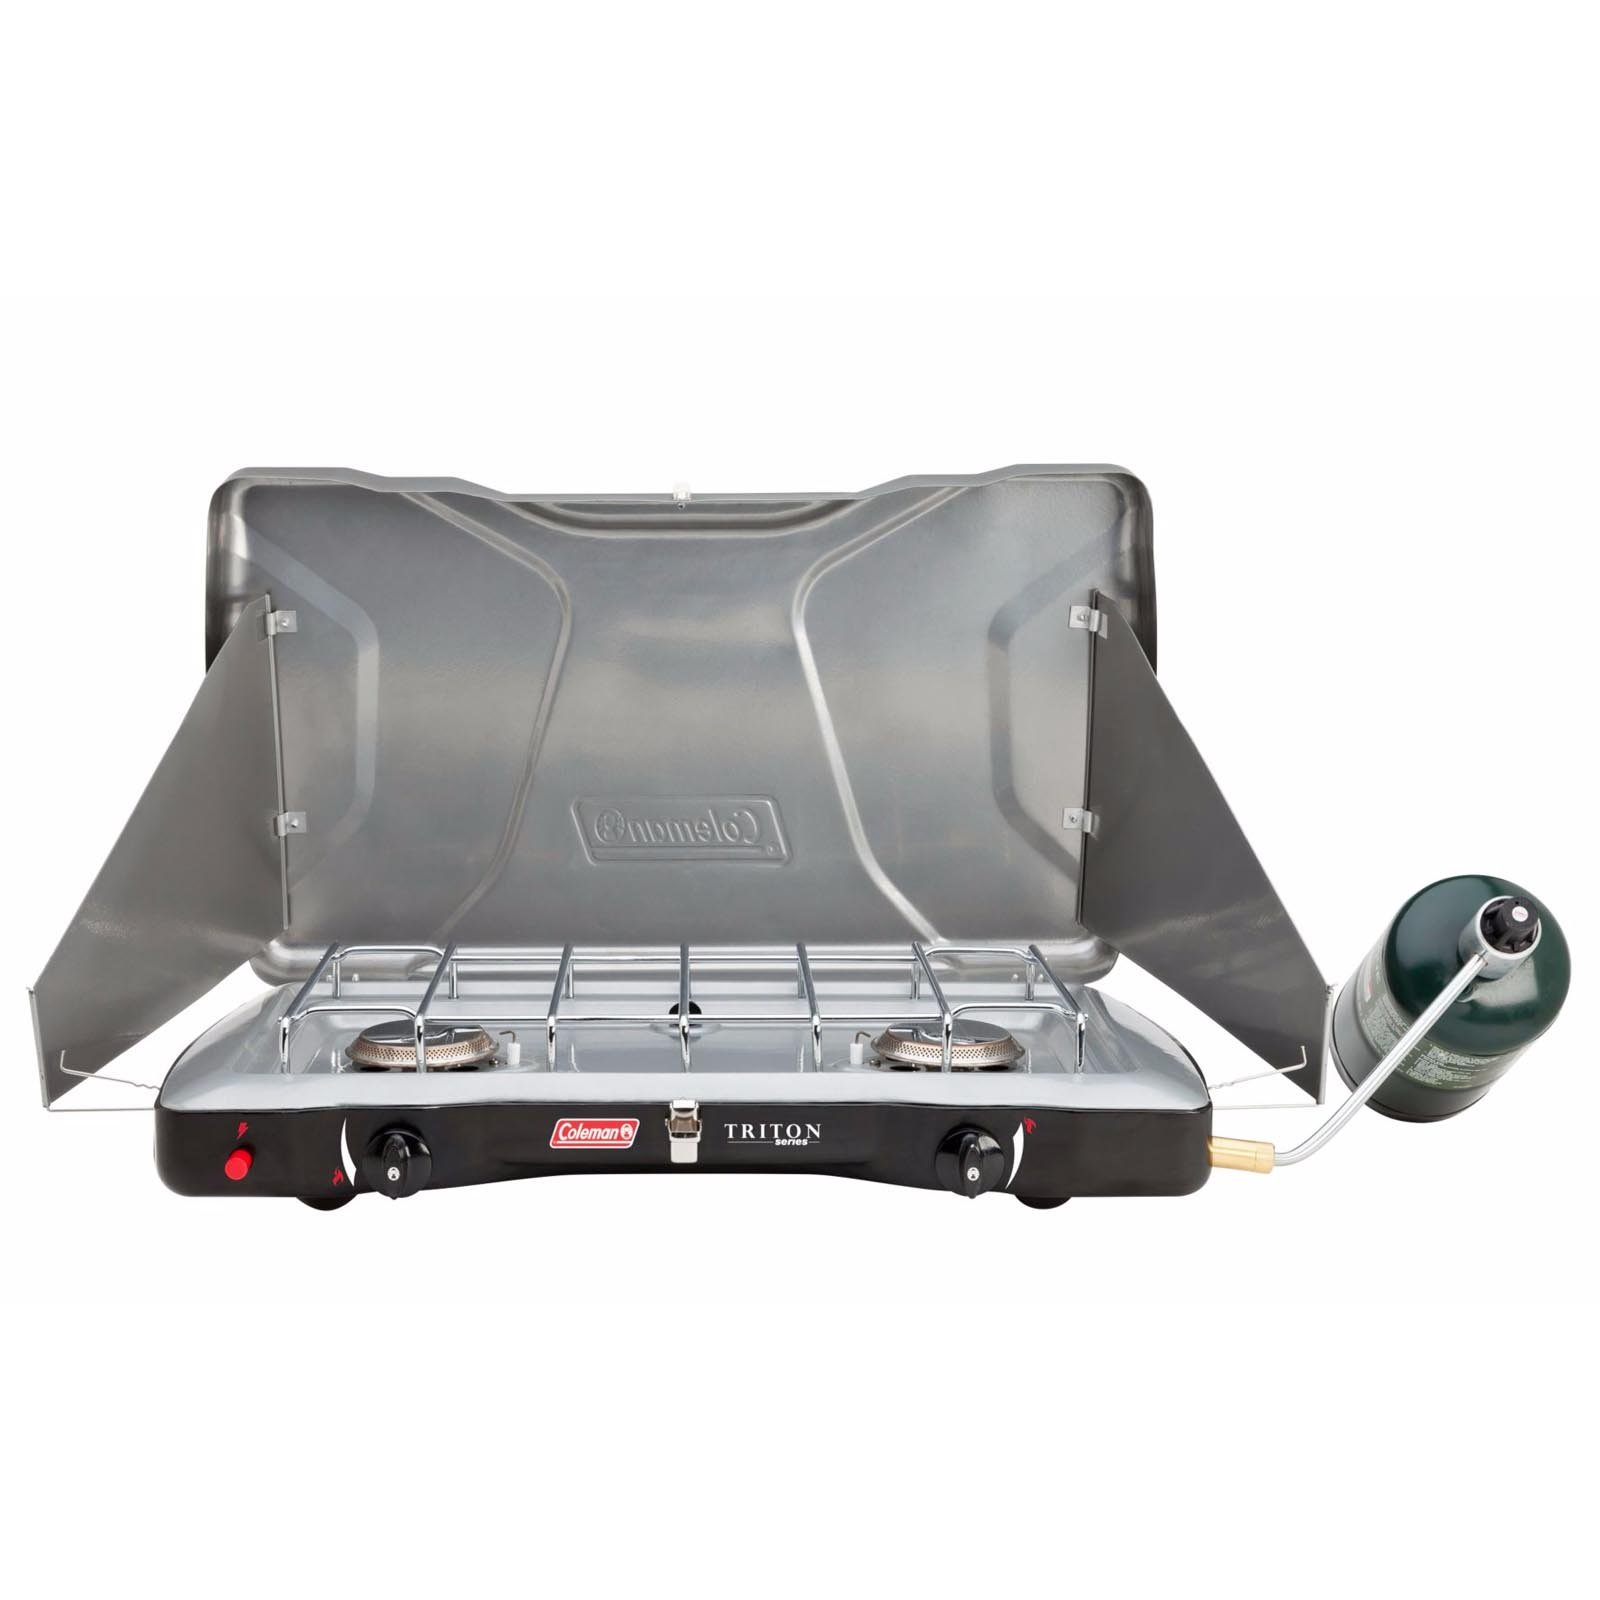 Coleman Portable Triton + Propane Gas Camping Stove (3 Set) by Coleman